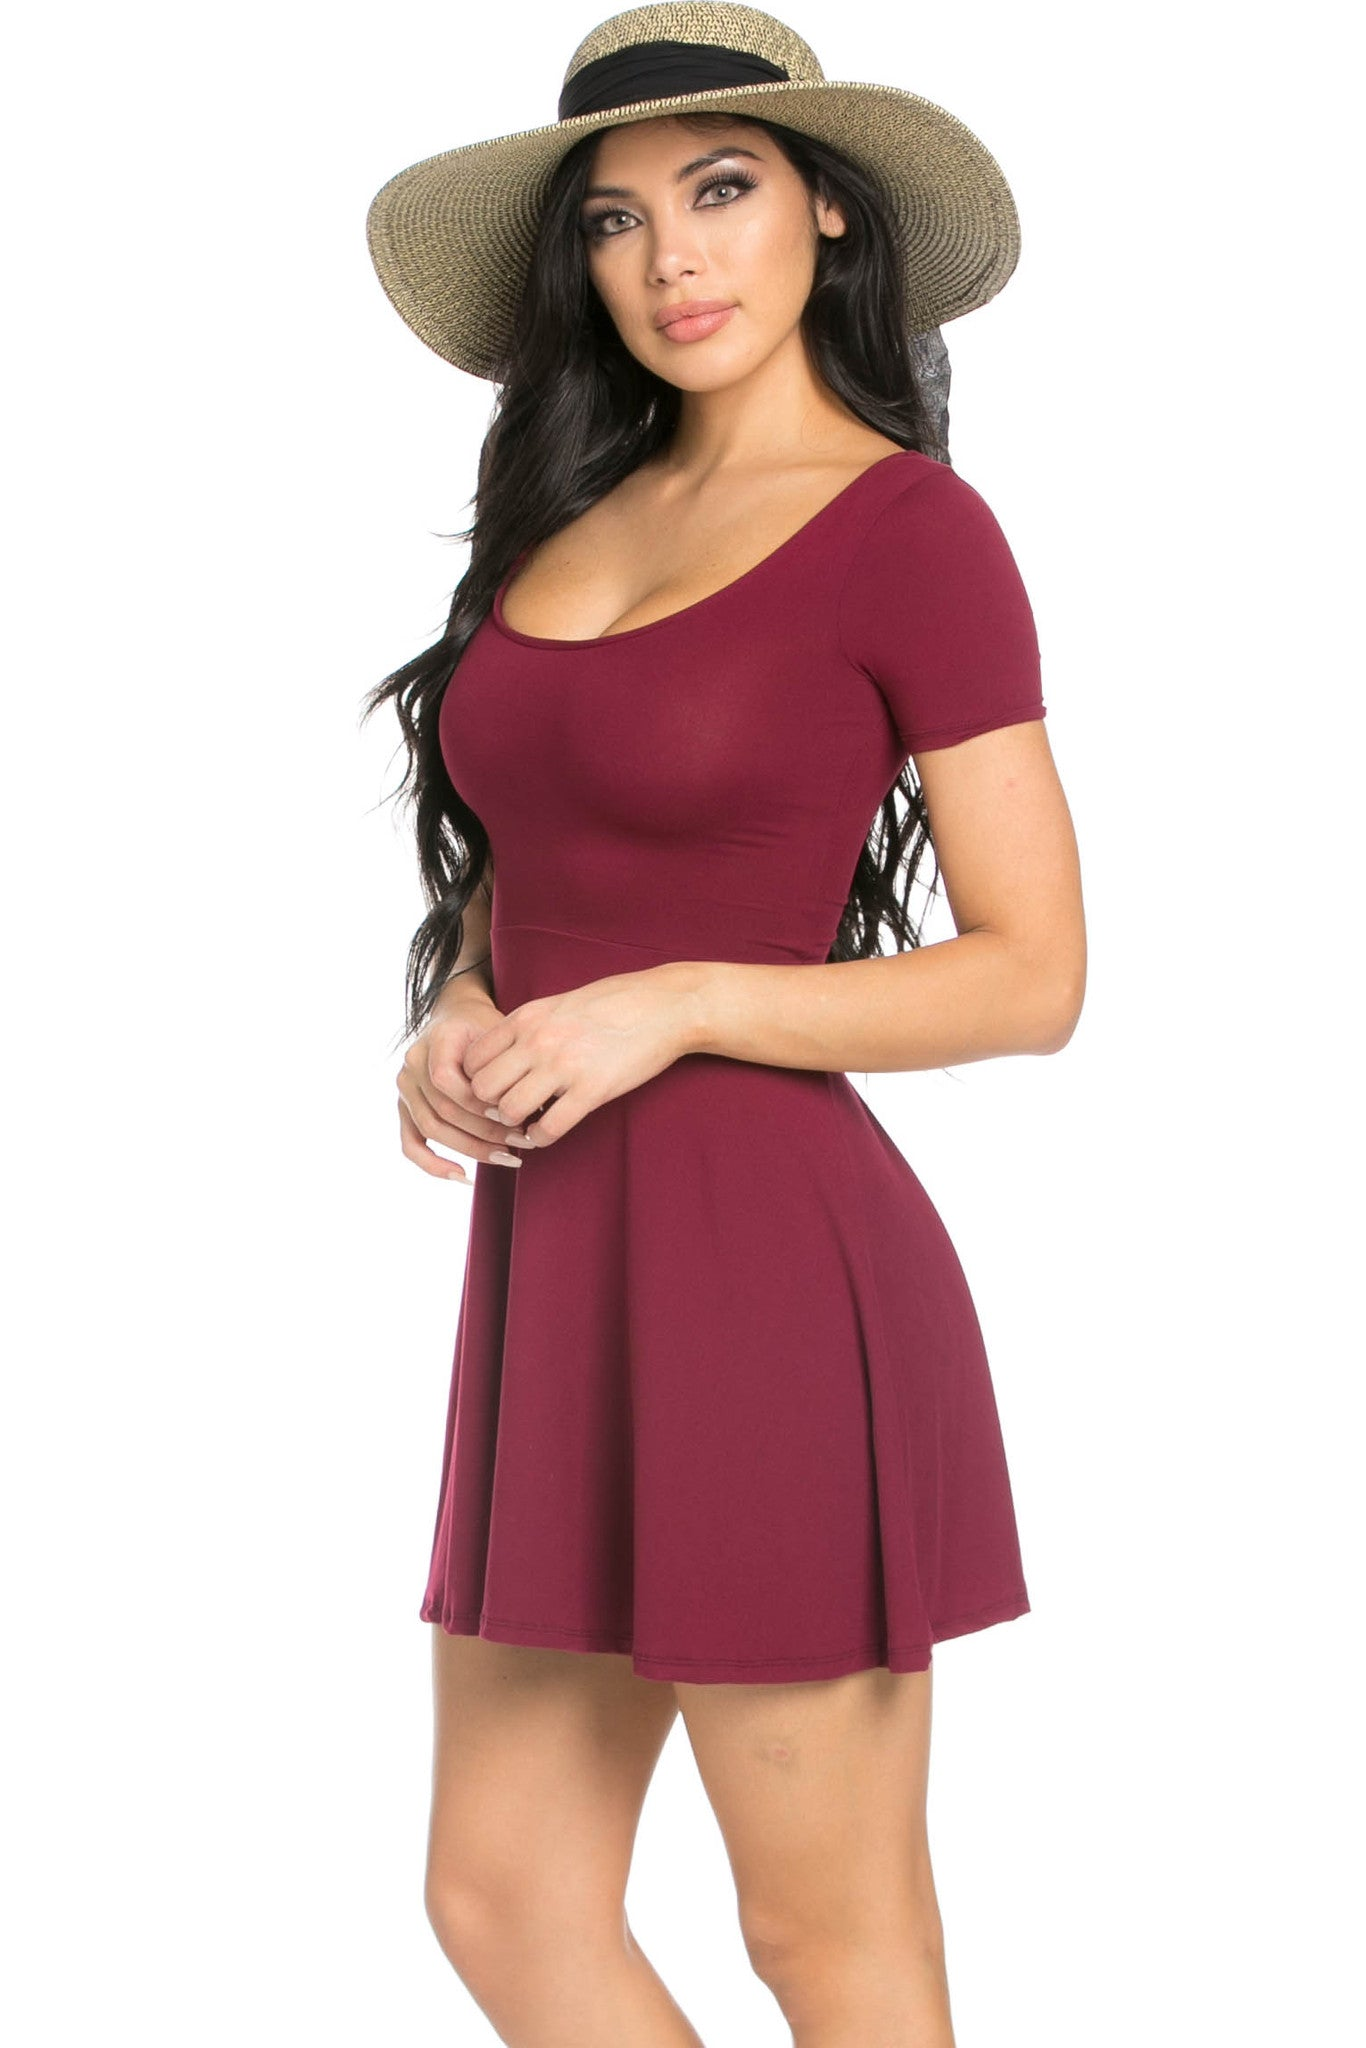 Micro Suede Burgundy Mini Dress - Dresses - My Yuccie - 2